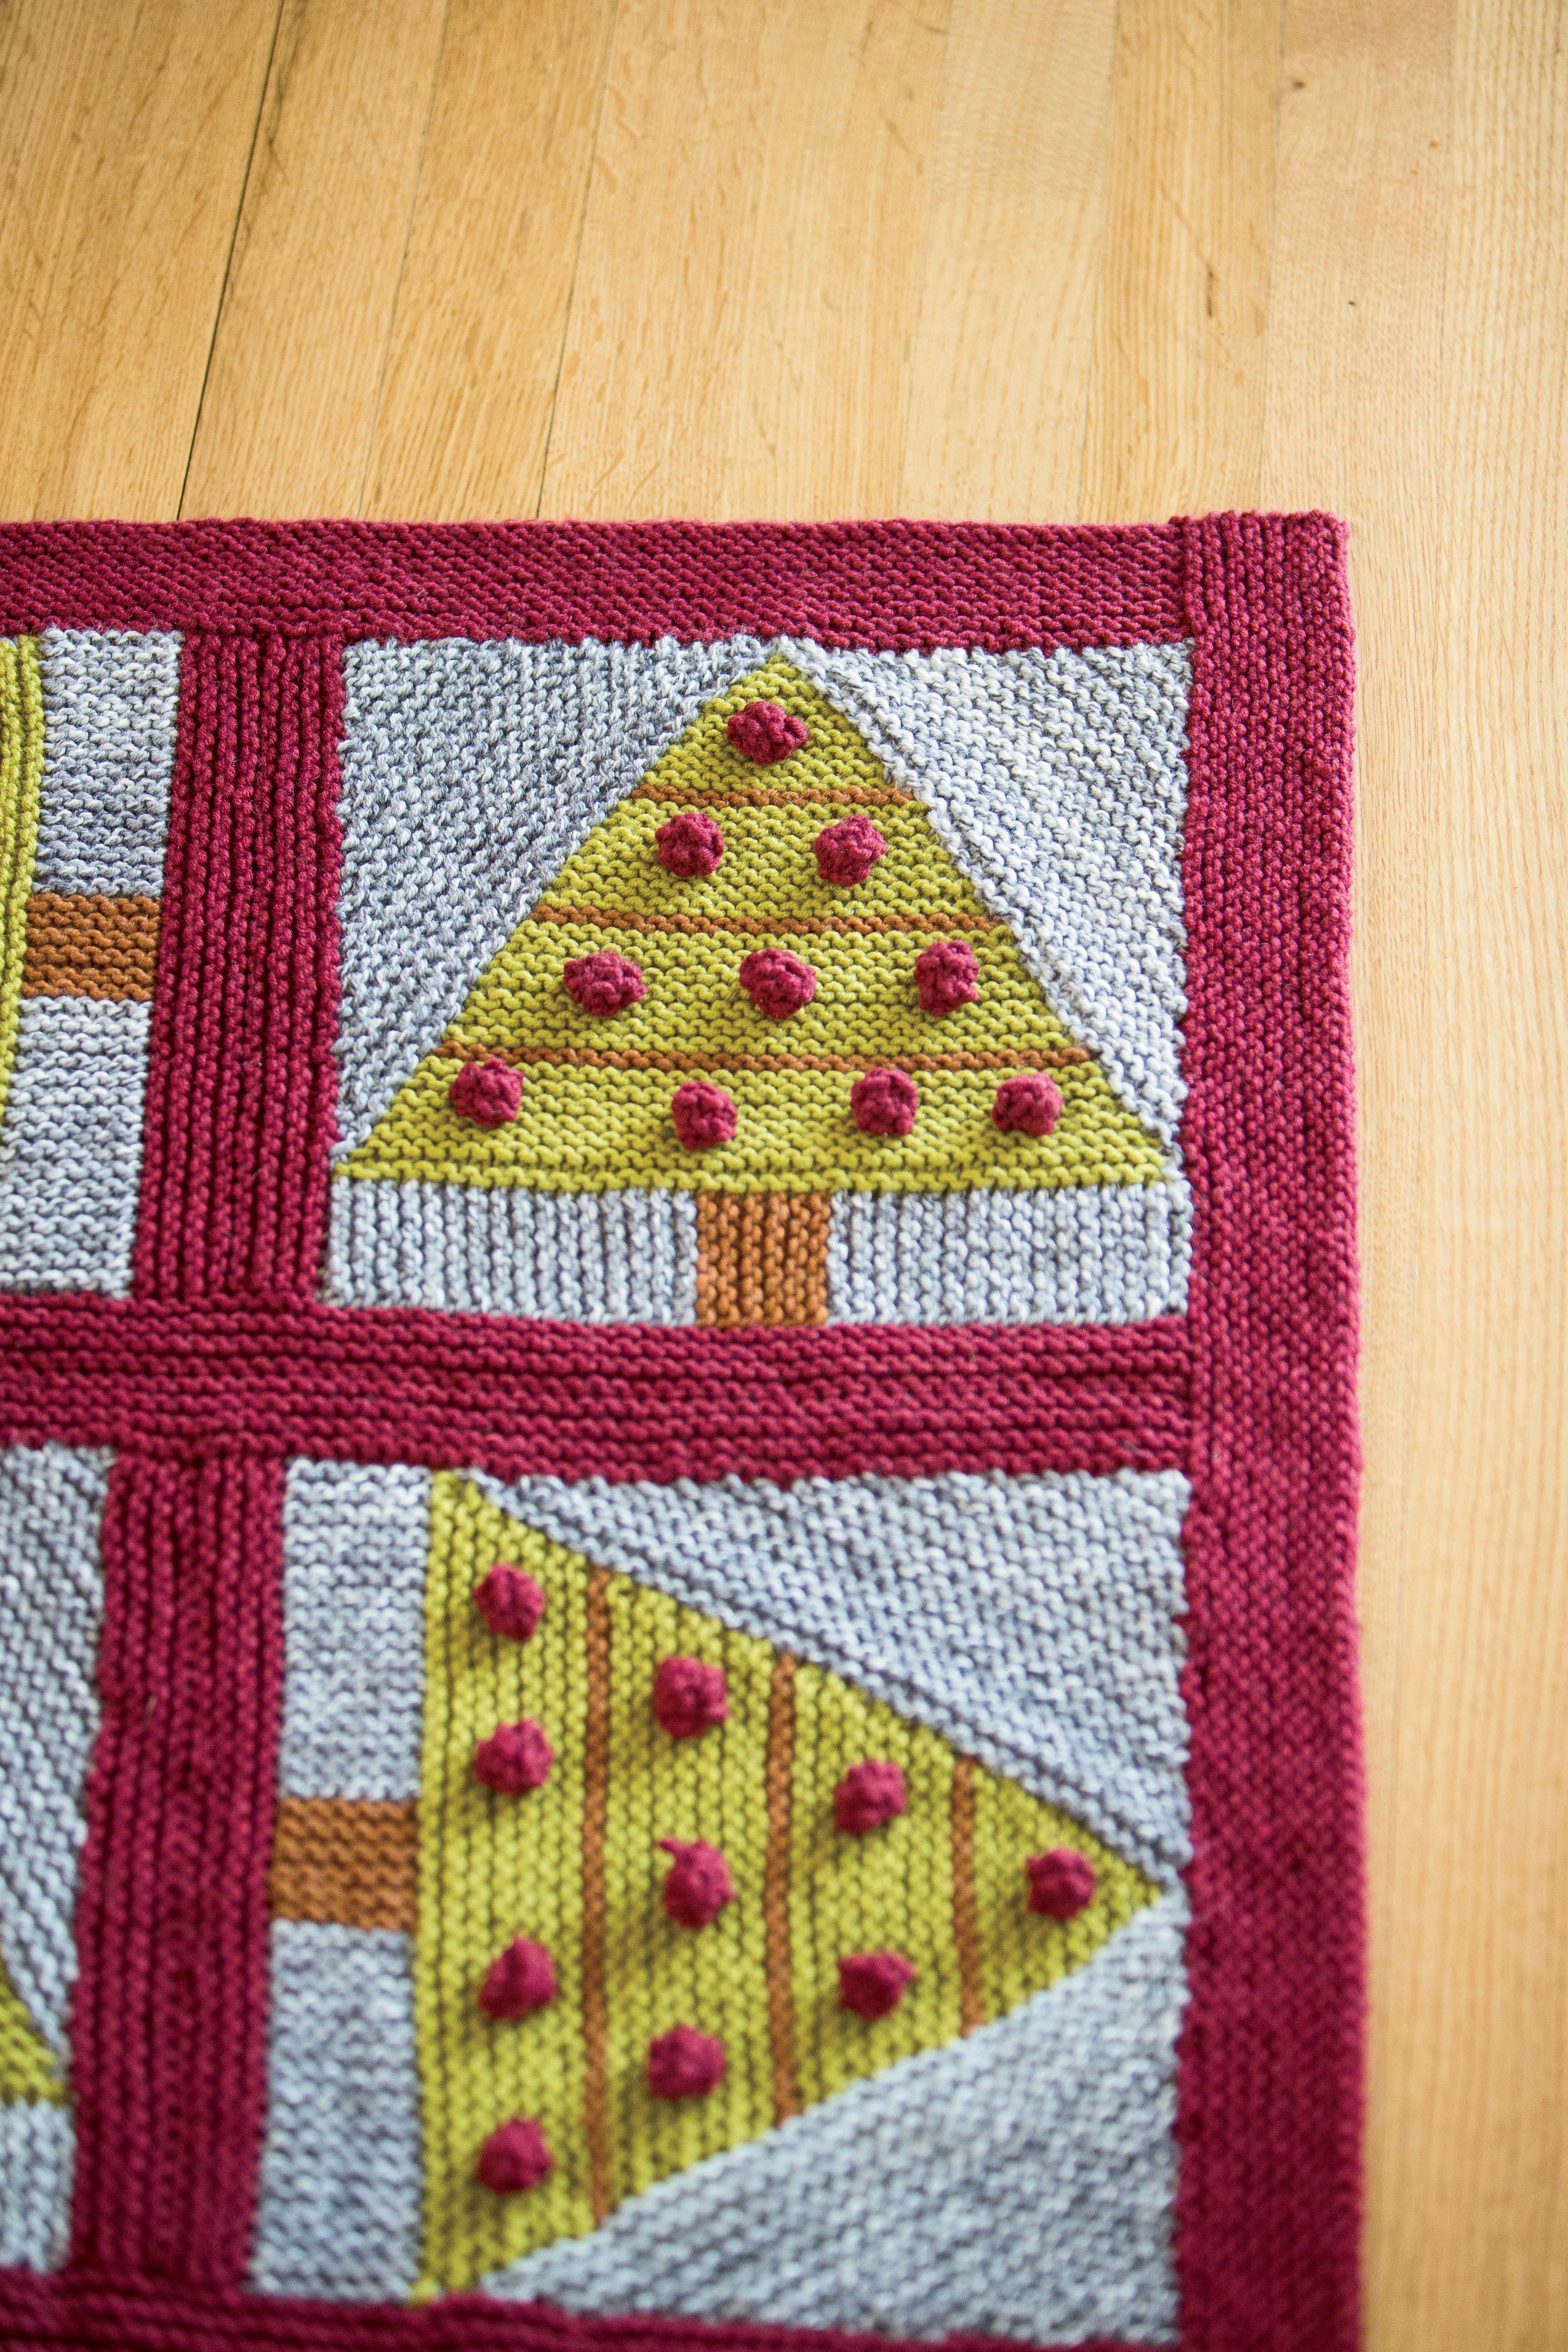 Knitted Yarn Patterns and Knitting Tutorials | Blanket ...